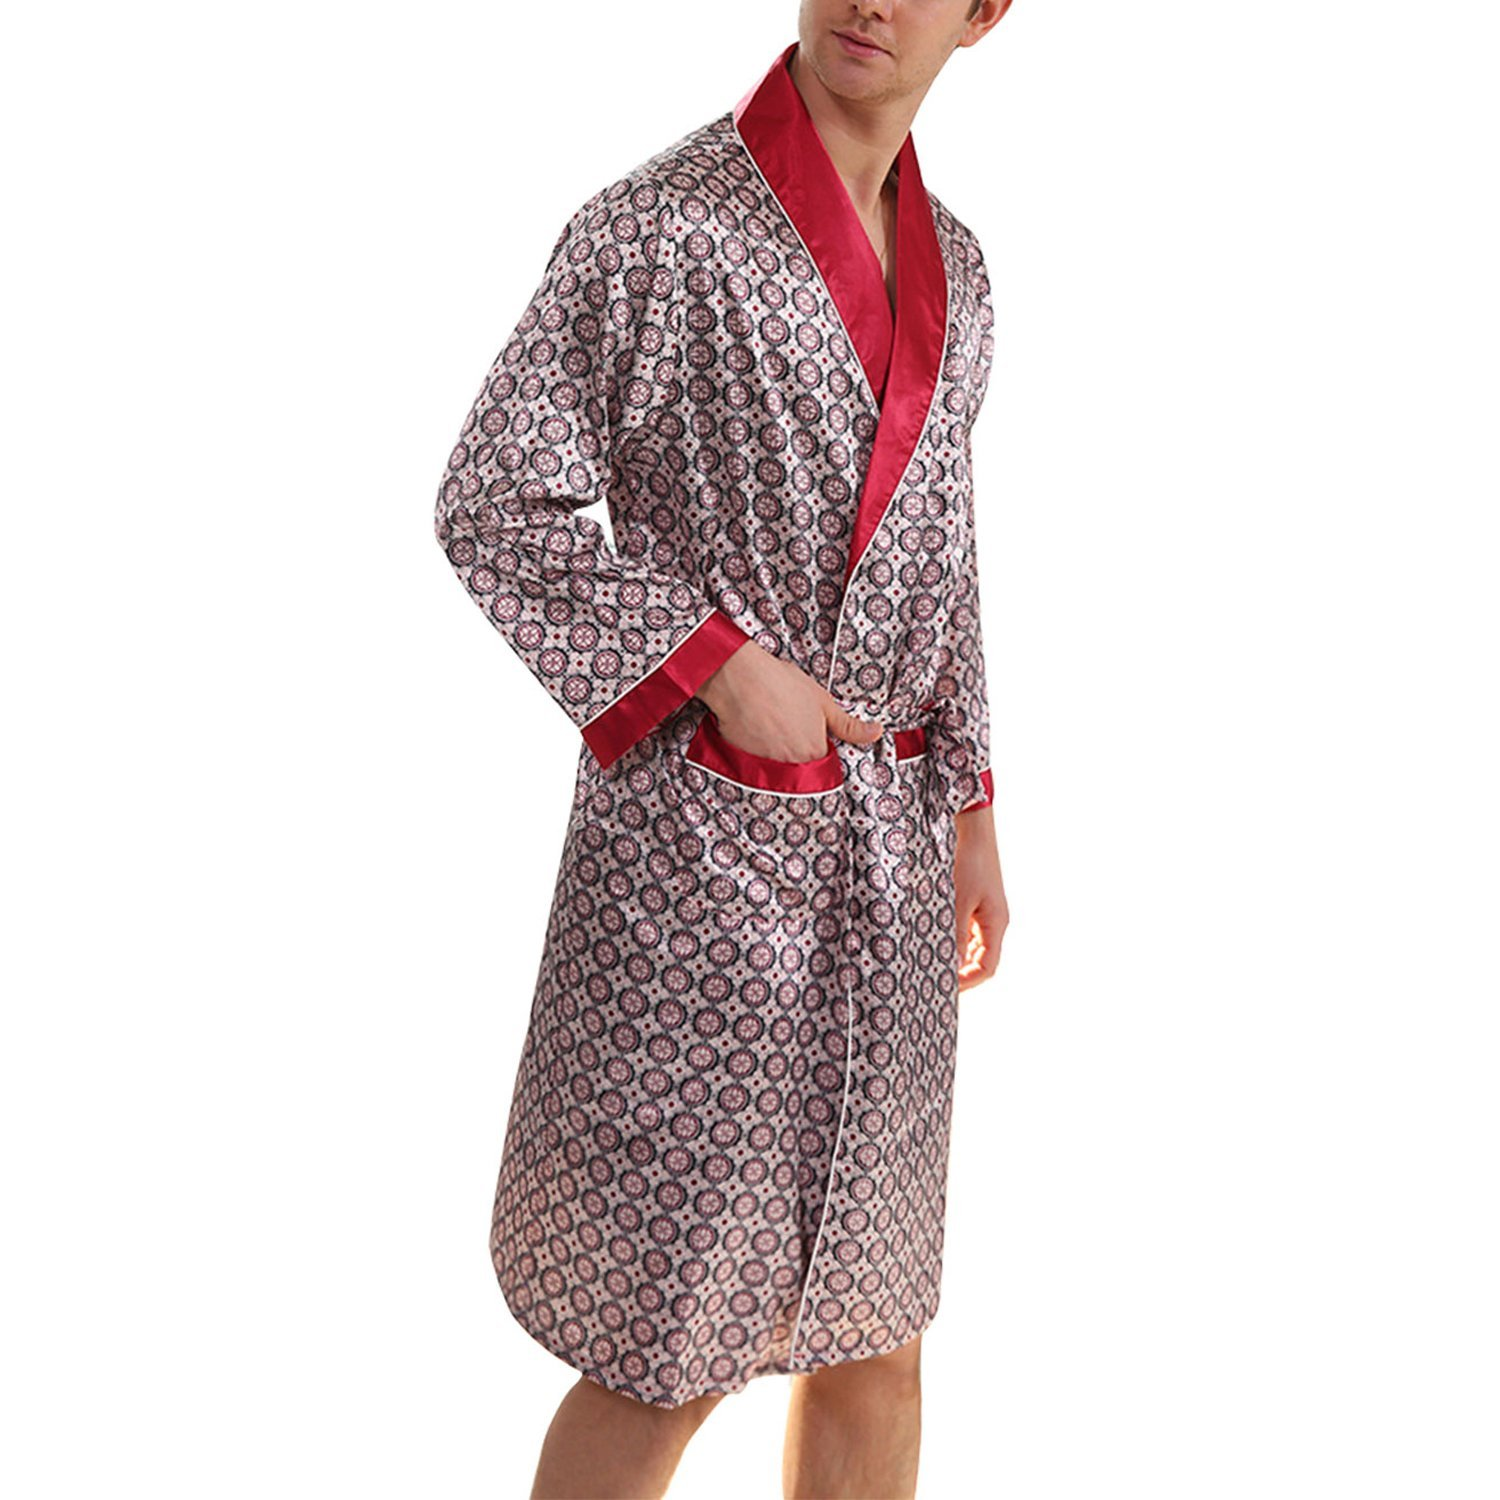 6a14842367 Get Quotations · Yesky Men s Satin Kimono Robe Printed Bath Sleepwear  Classic Comfortable Satin Robe